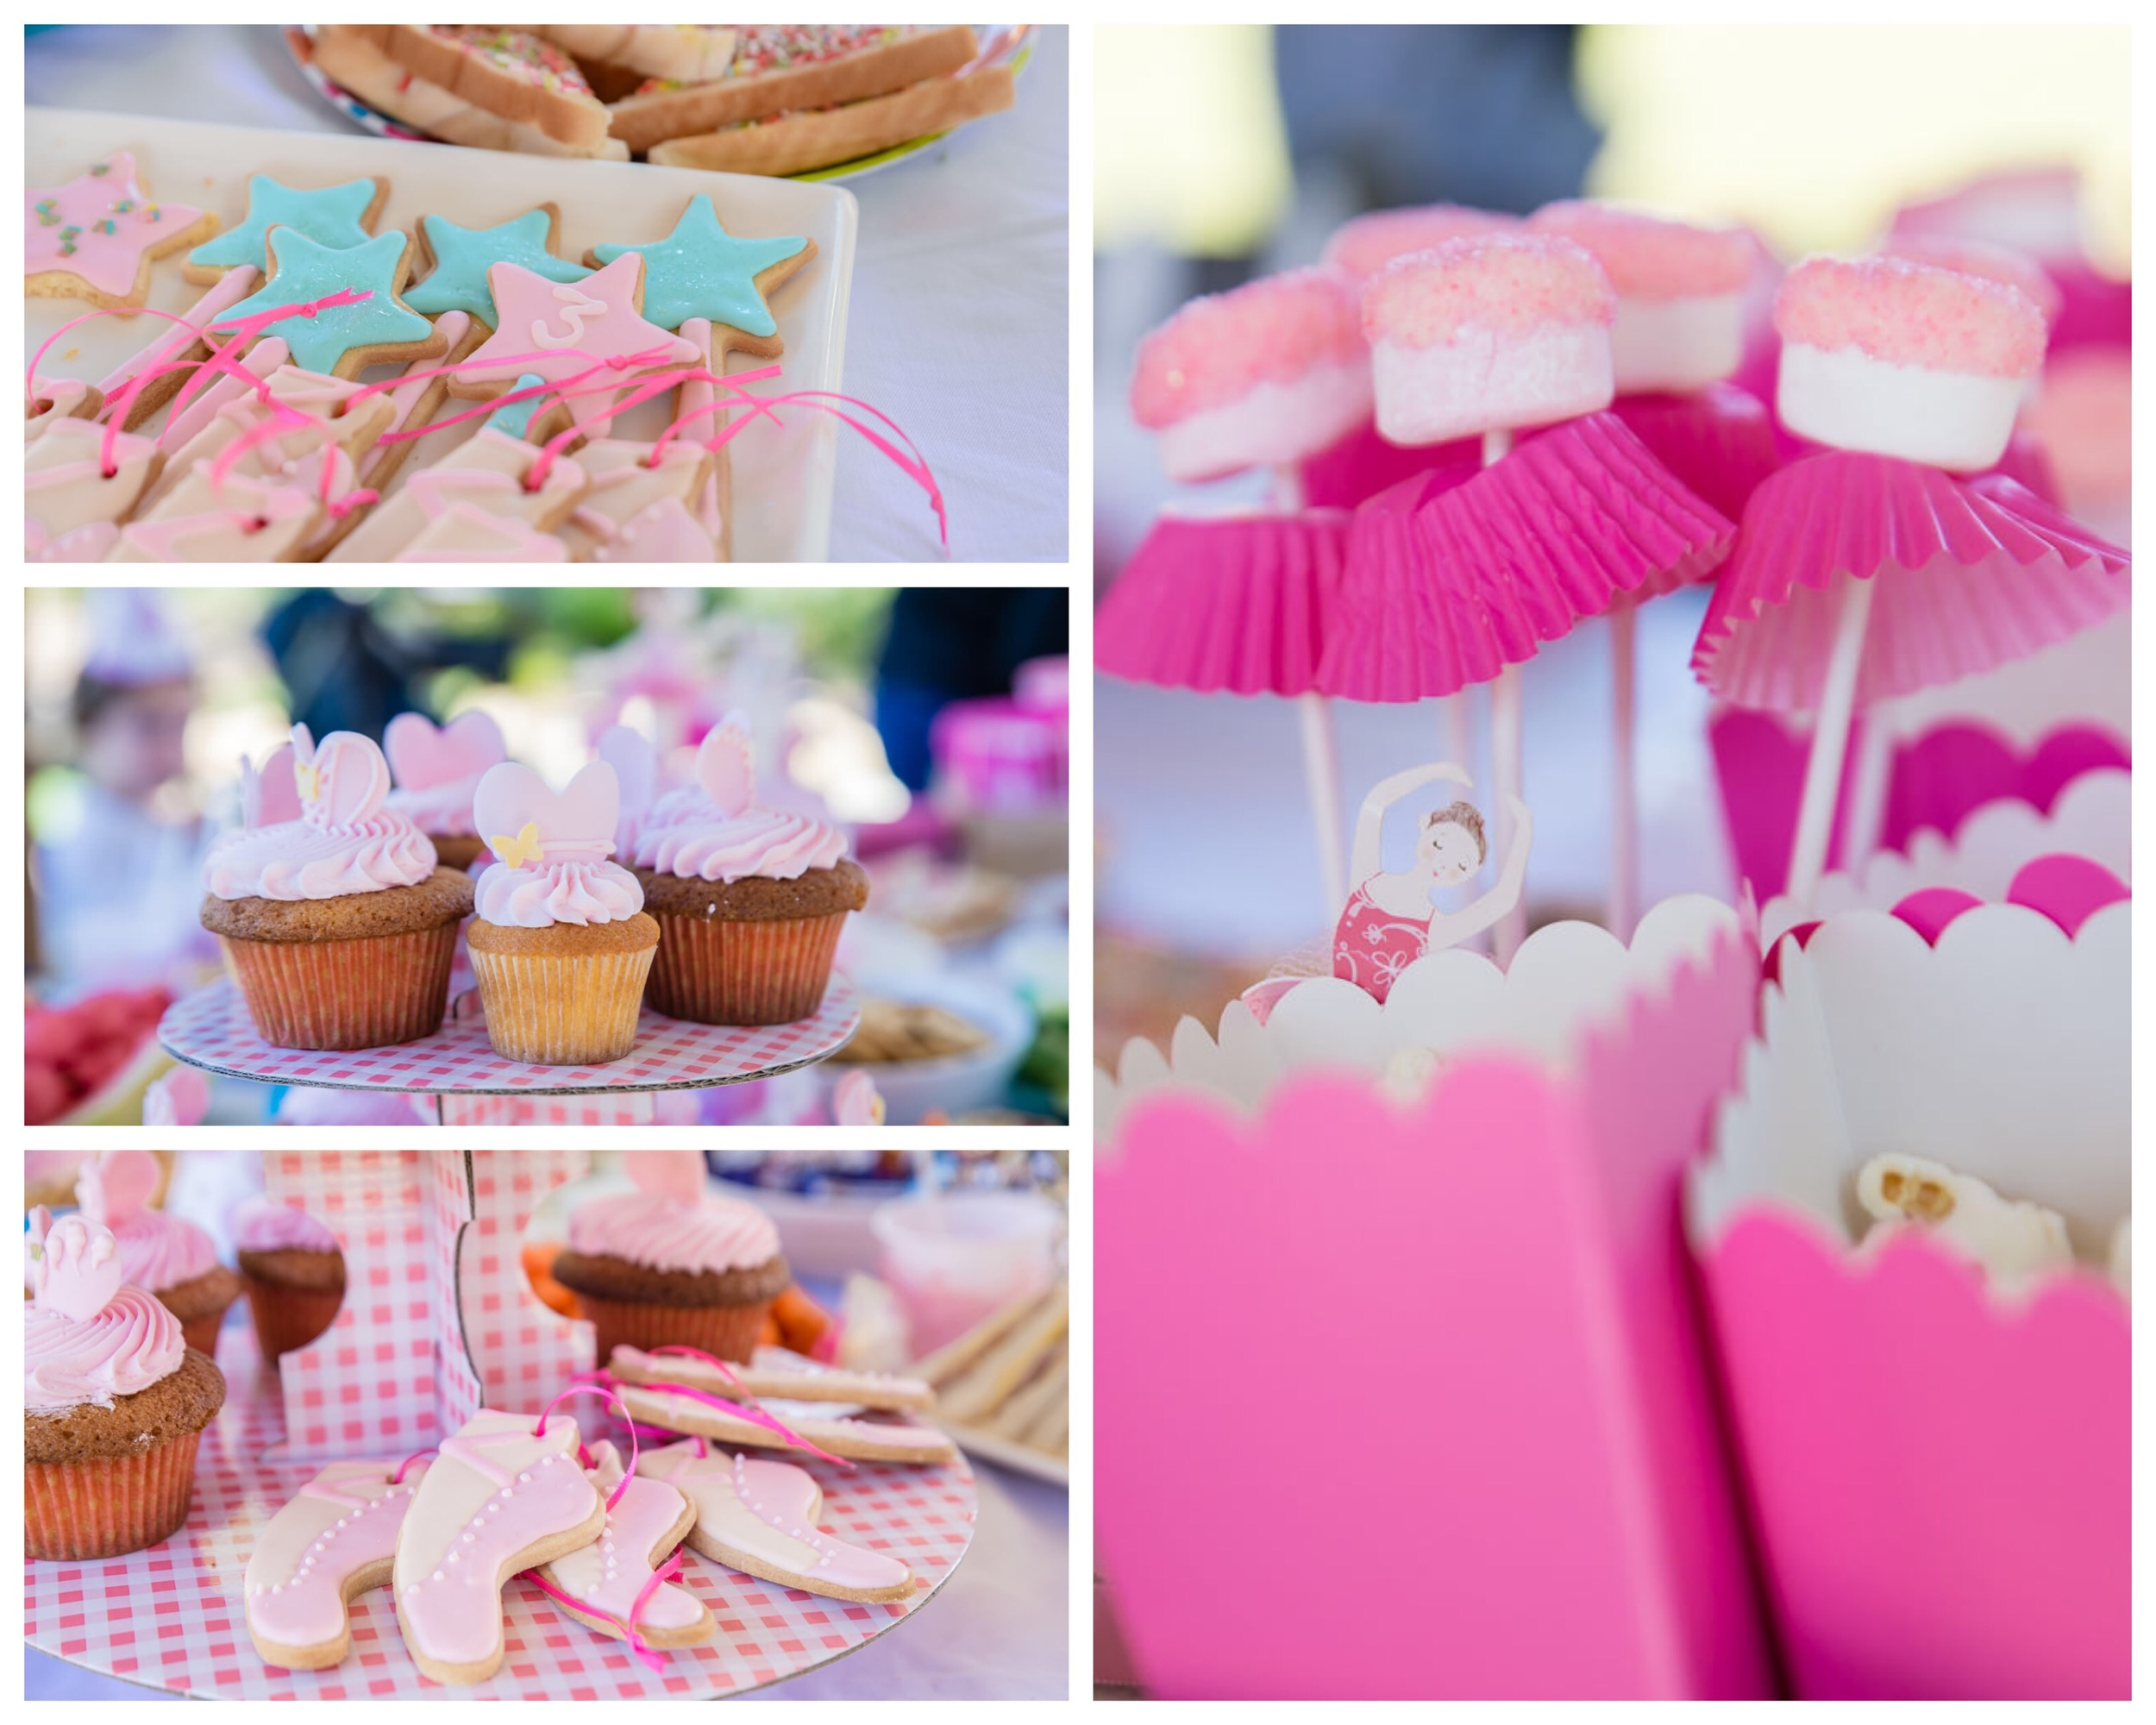 A pink, princess, ballet party for a 3 year old